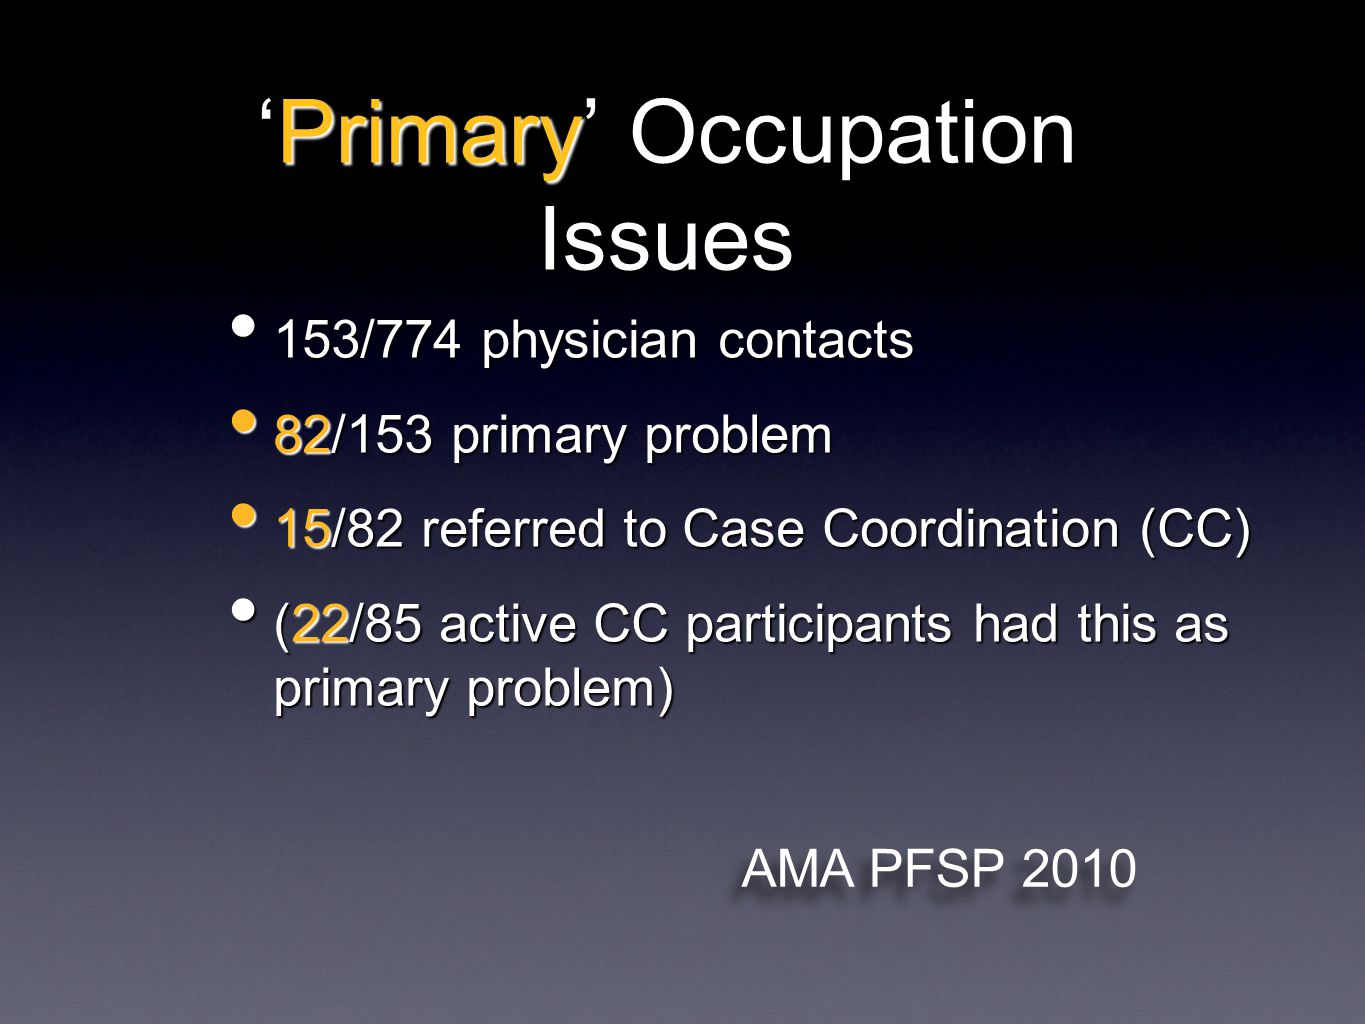 'Primary' Occupation Issues 153/774 physician contacts 153/774 physician contacts 82/153 primary problem 82/153 primary problem 15/82 referred to Case Coordination (CC) 15/82 referred to Case Coordination (CC) (22/85 active CC participants had this as primary problem) (22/85 active CC participants had this as primary problem) AMA PFSP 2010